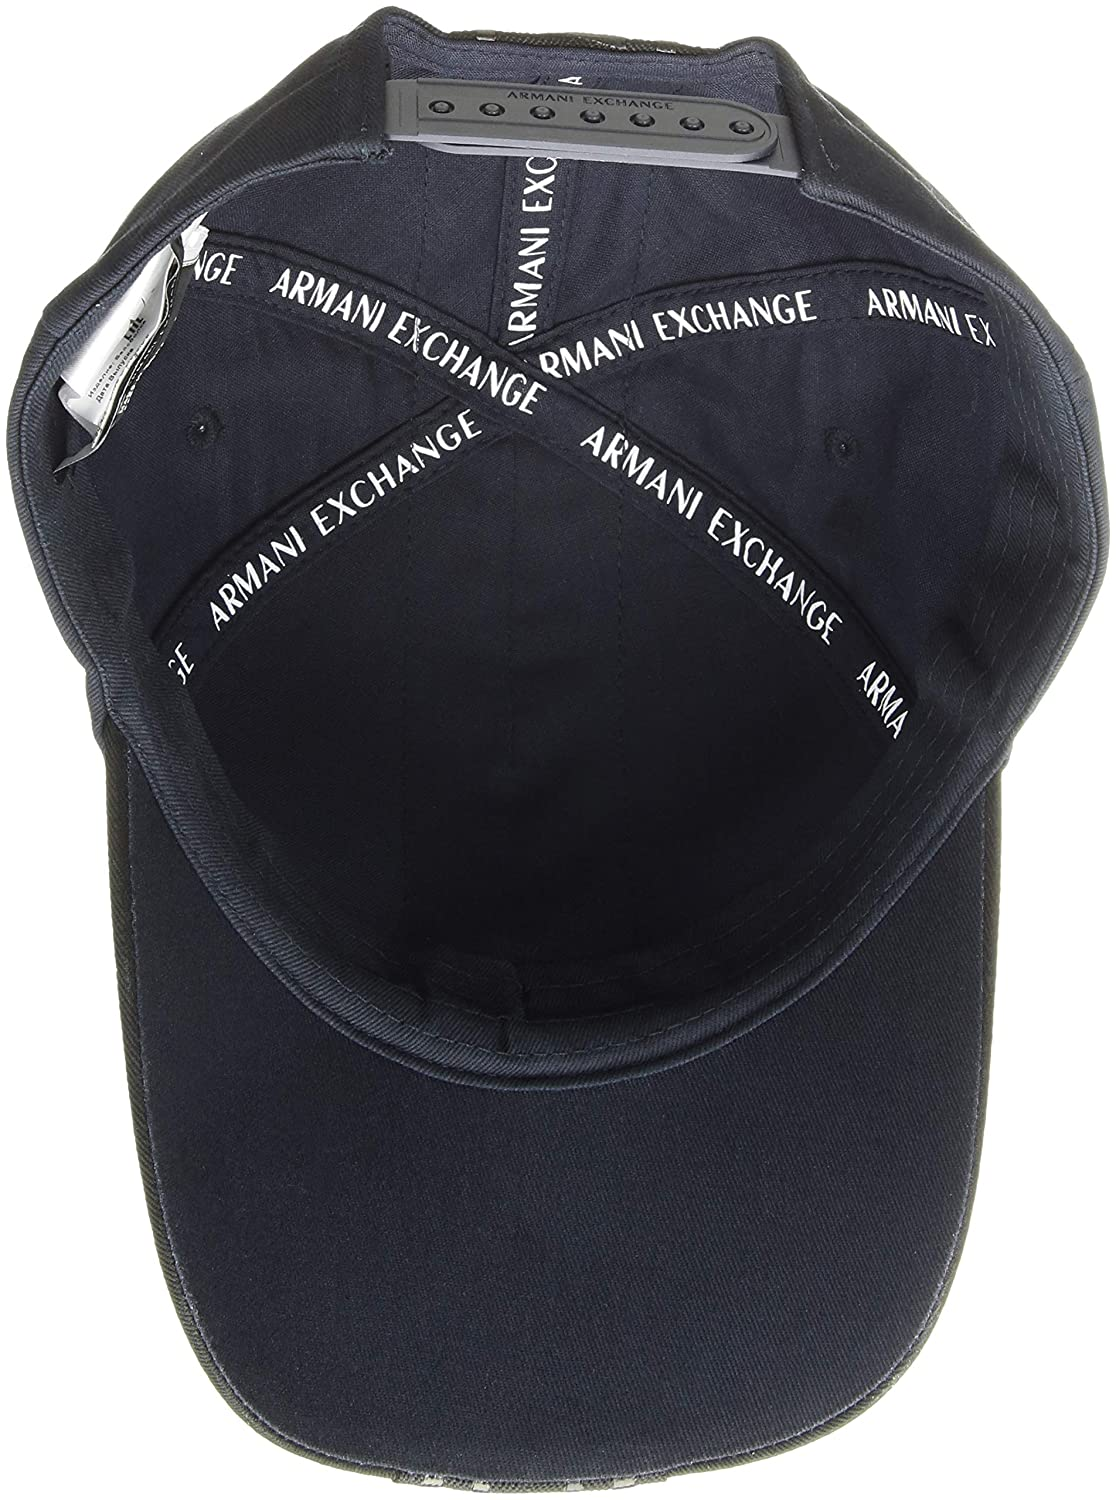 ARMANI EXCHANGE UOMO CAPPELLO CON VISIERA BASEBALL 954047 8A310 unica blu   Amazon.it  Abbigliamento 5046dcace139